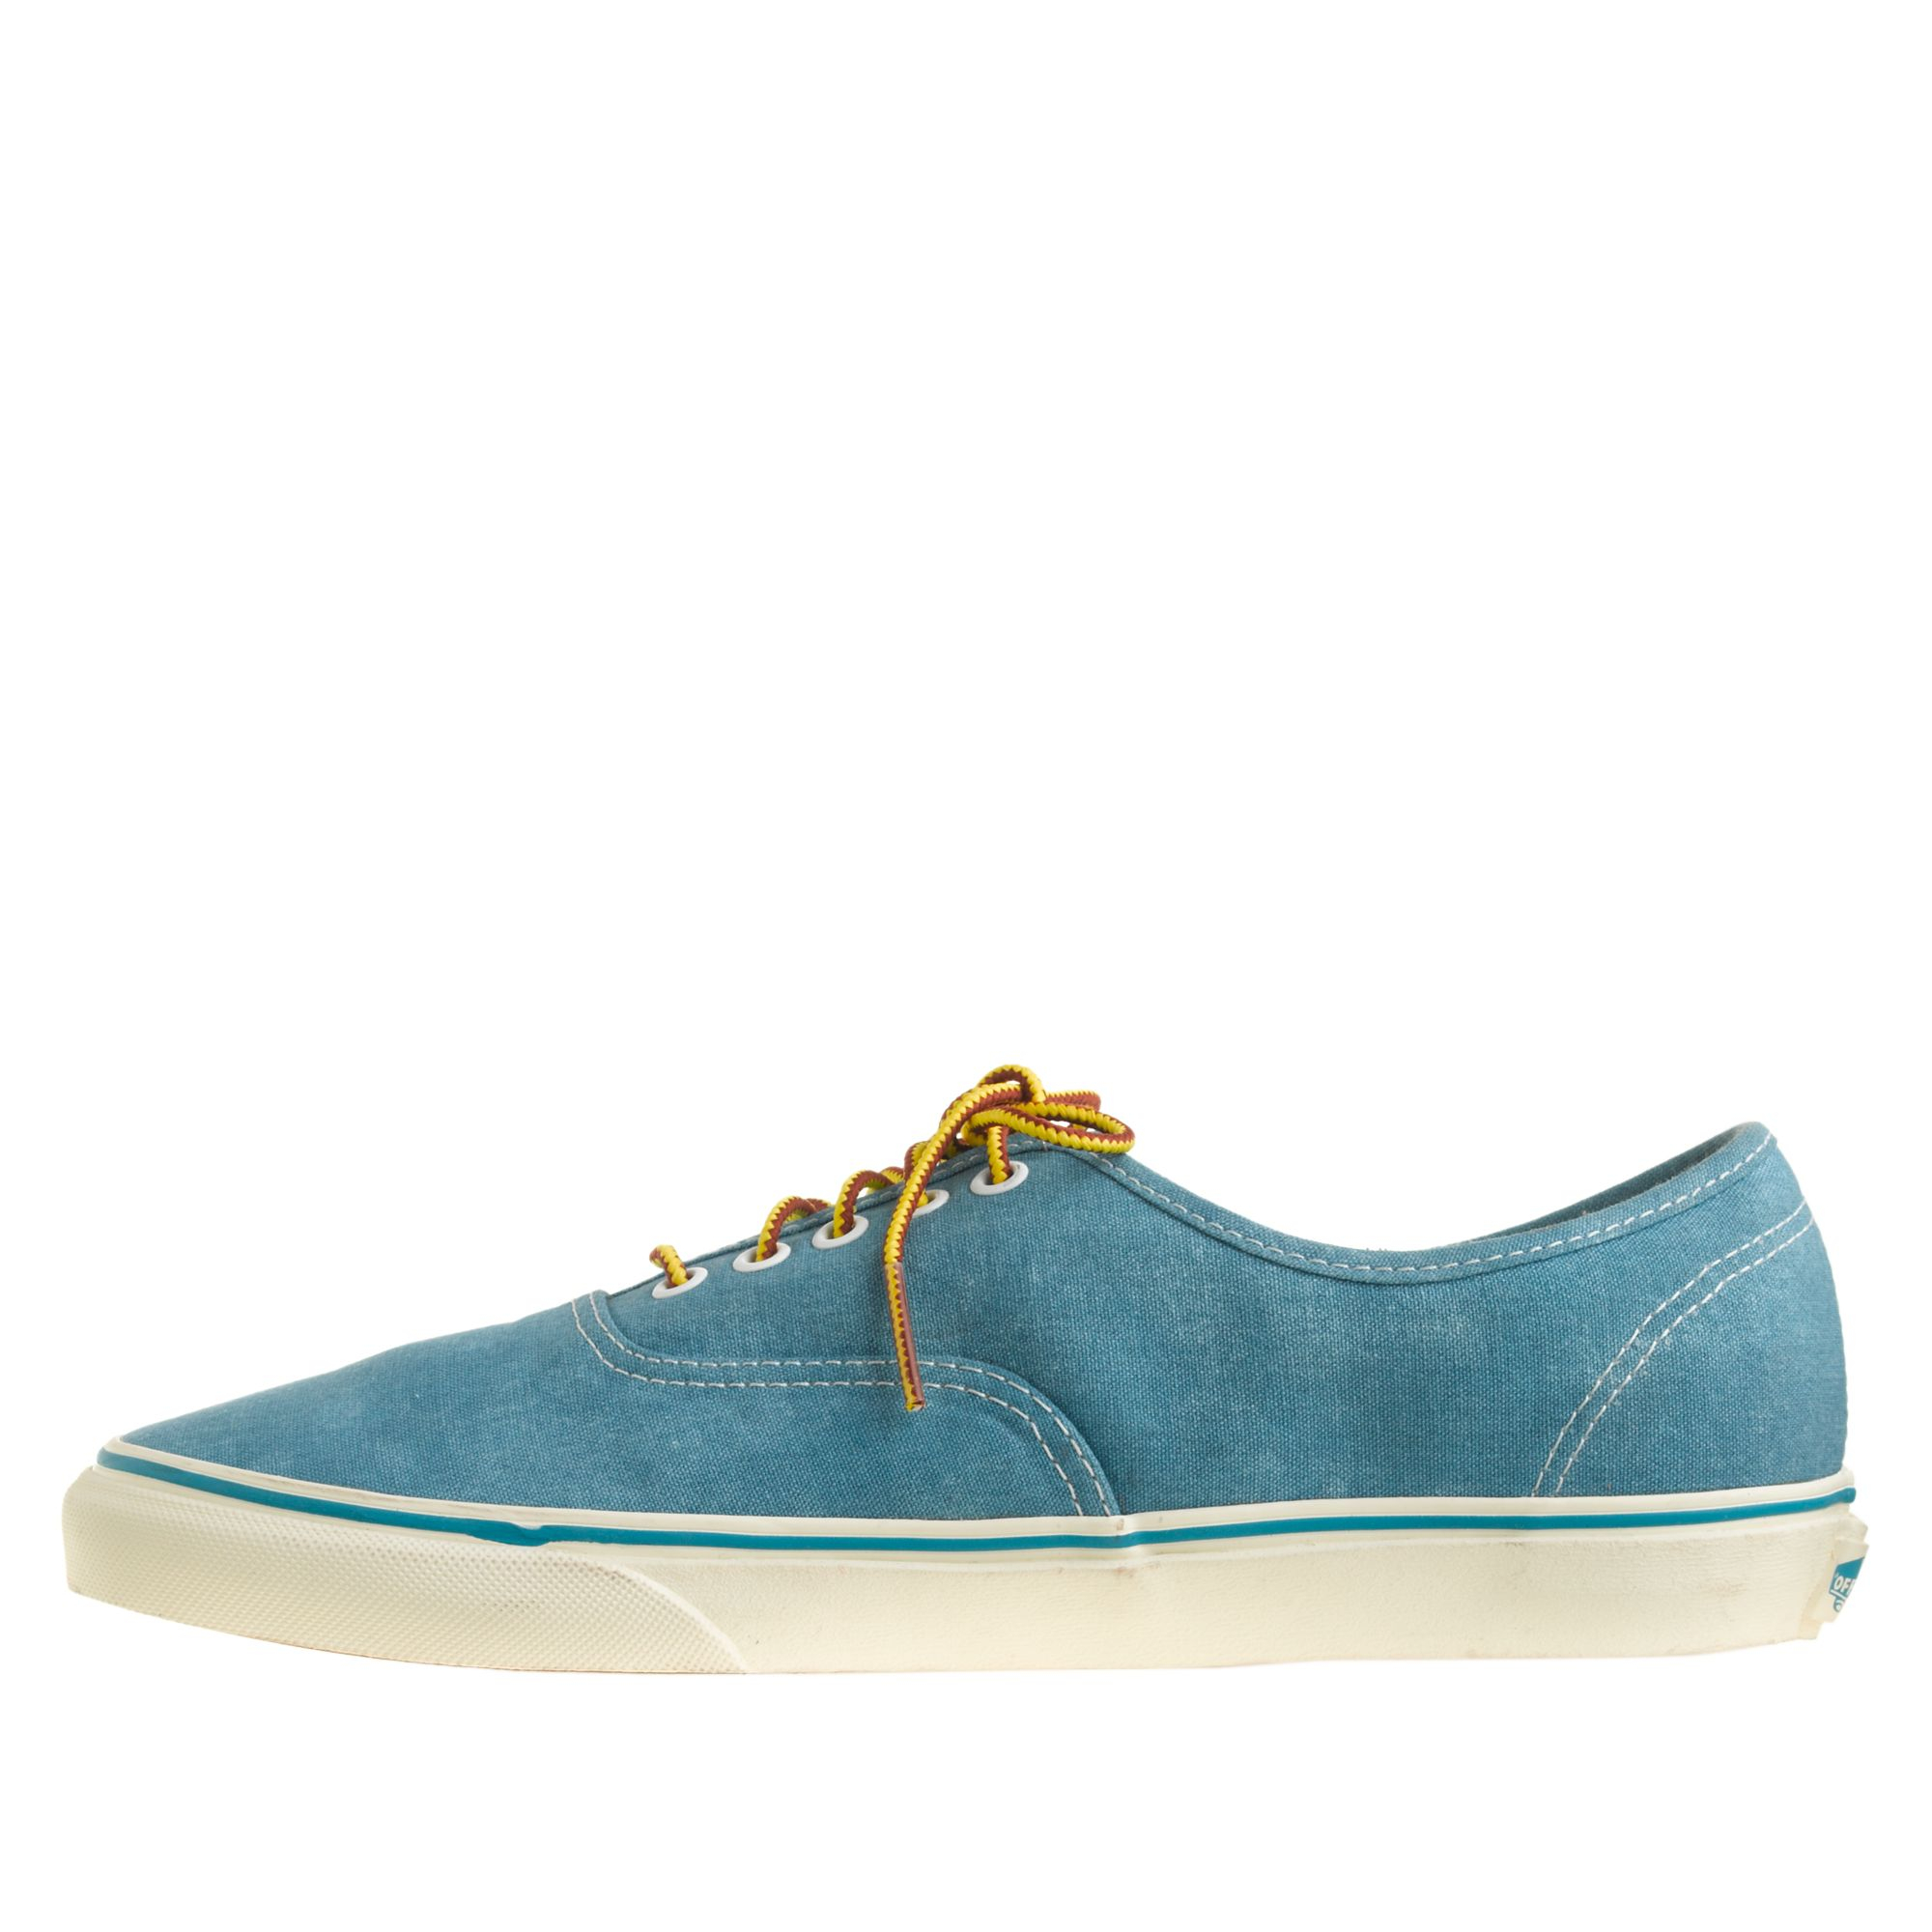 36ed8a7156a961 Lyst - J.Crew Washed Canvas Authentic Sneakers in Blue for Men